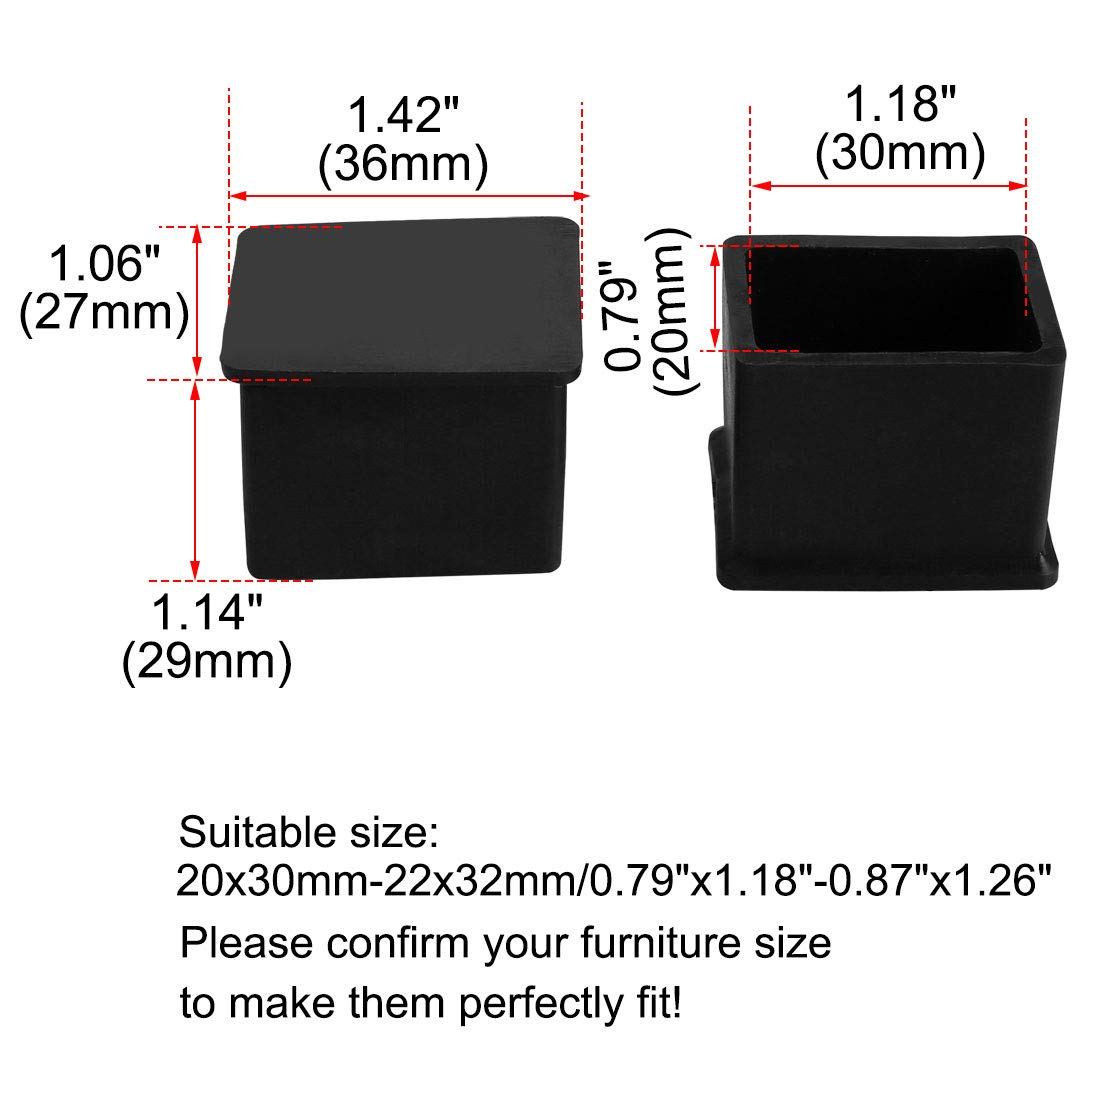 uxcell PVC Table Leg Cap End Tip Feet Cover Furniture Glide Floor Protector 100pcs 0.59 x 1.18 Inner Size Reduce Noise Prevent Scratch 15x30mm